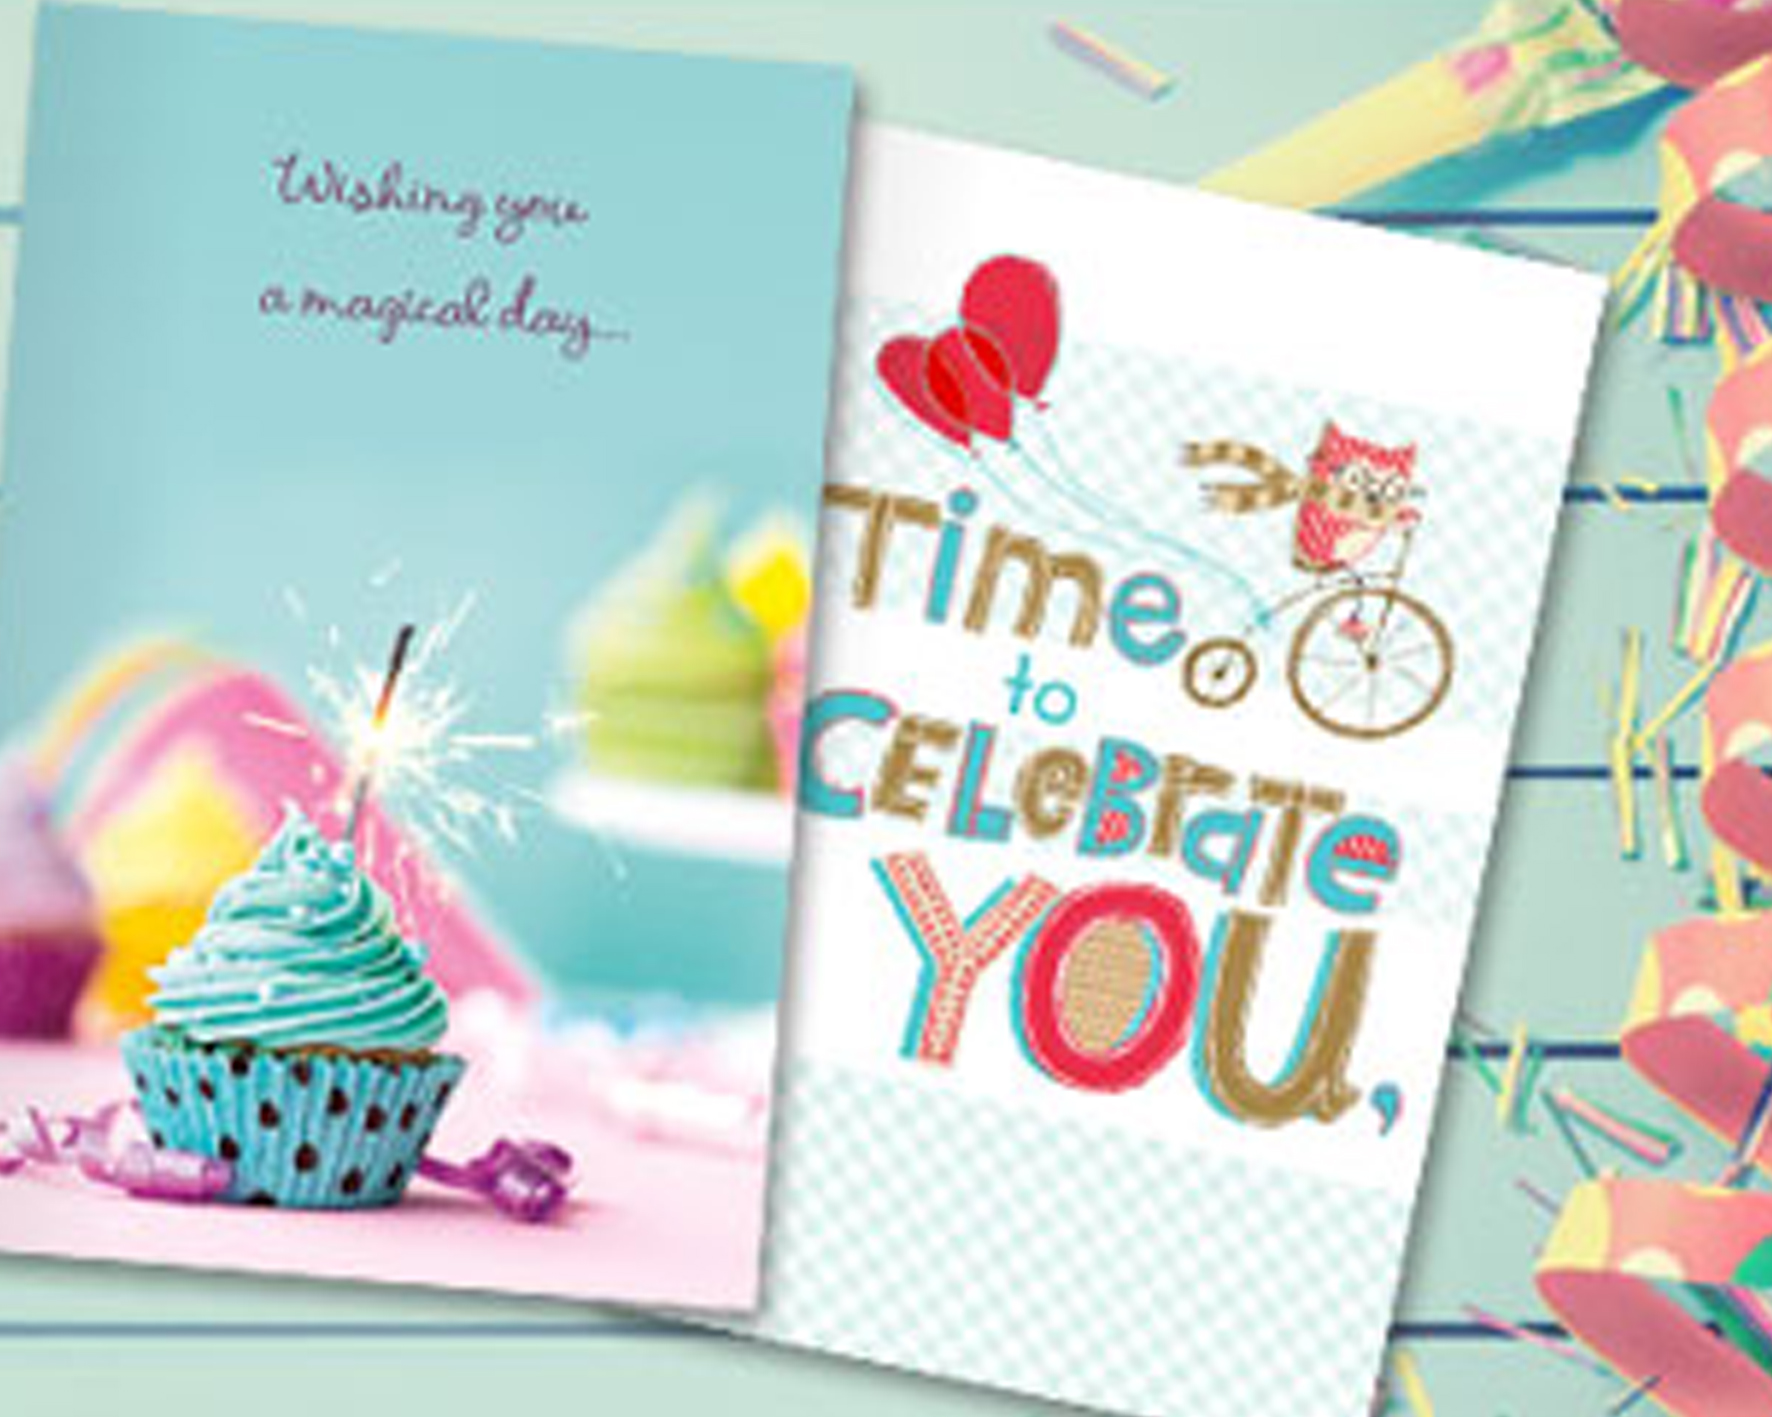 American Greetings Shop Greeting Cards Ecards Printable Cards